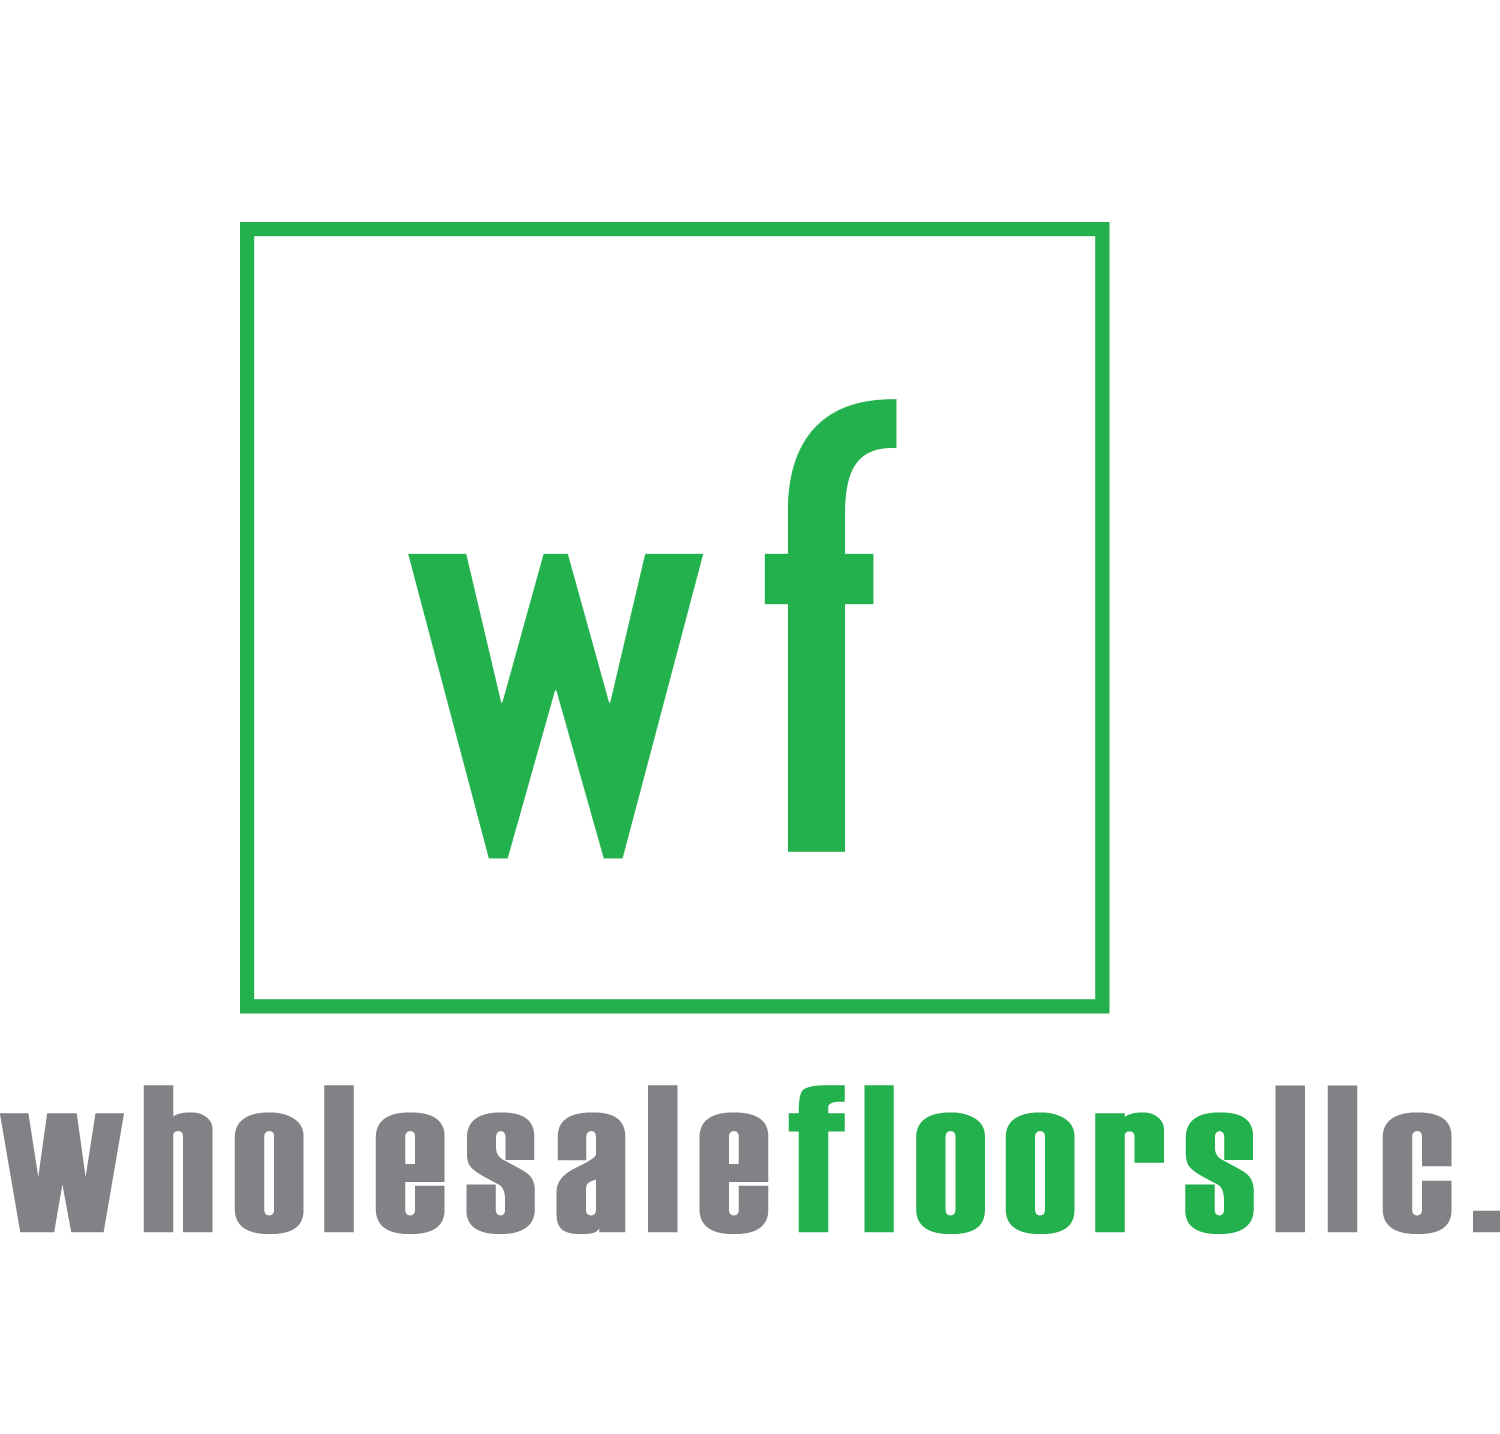 wholesalefloors_logo_AboutUs.png